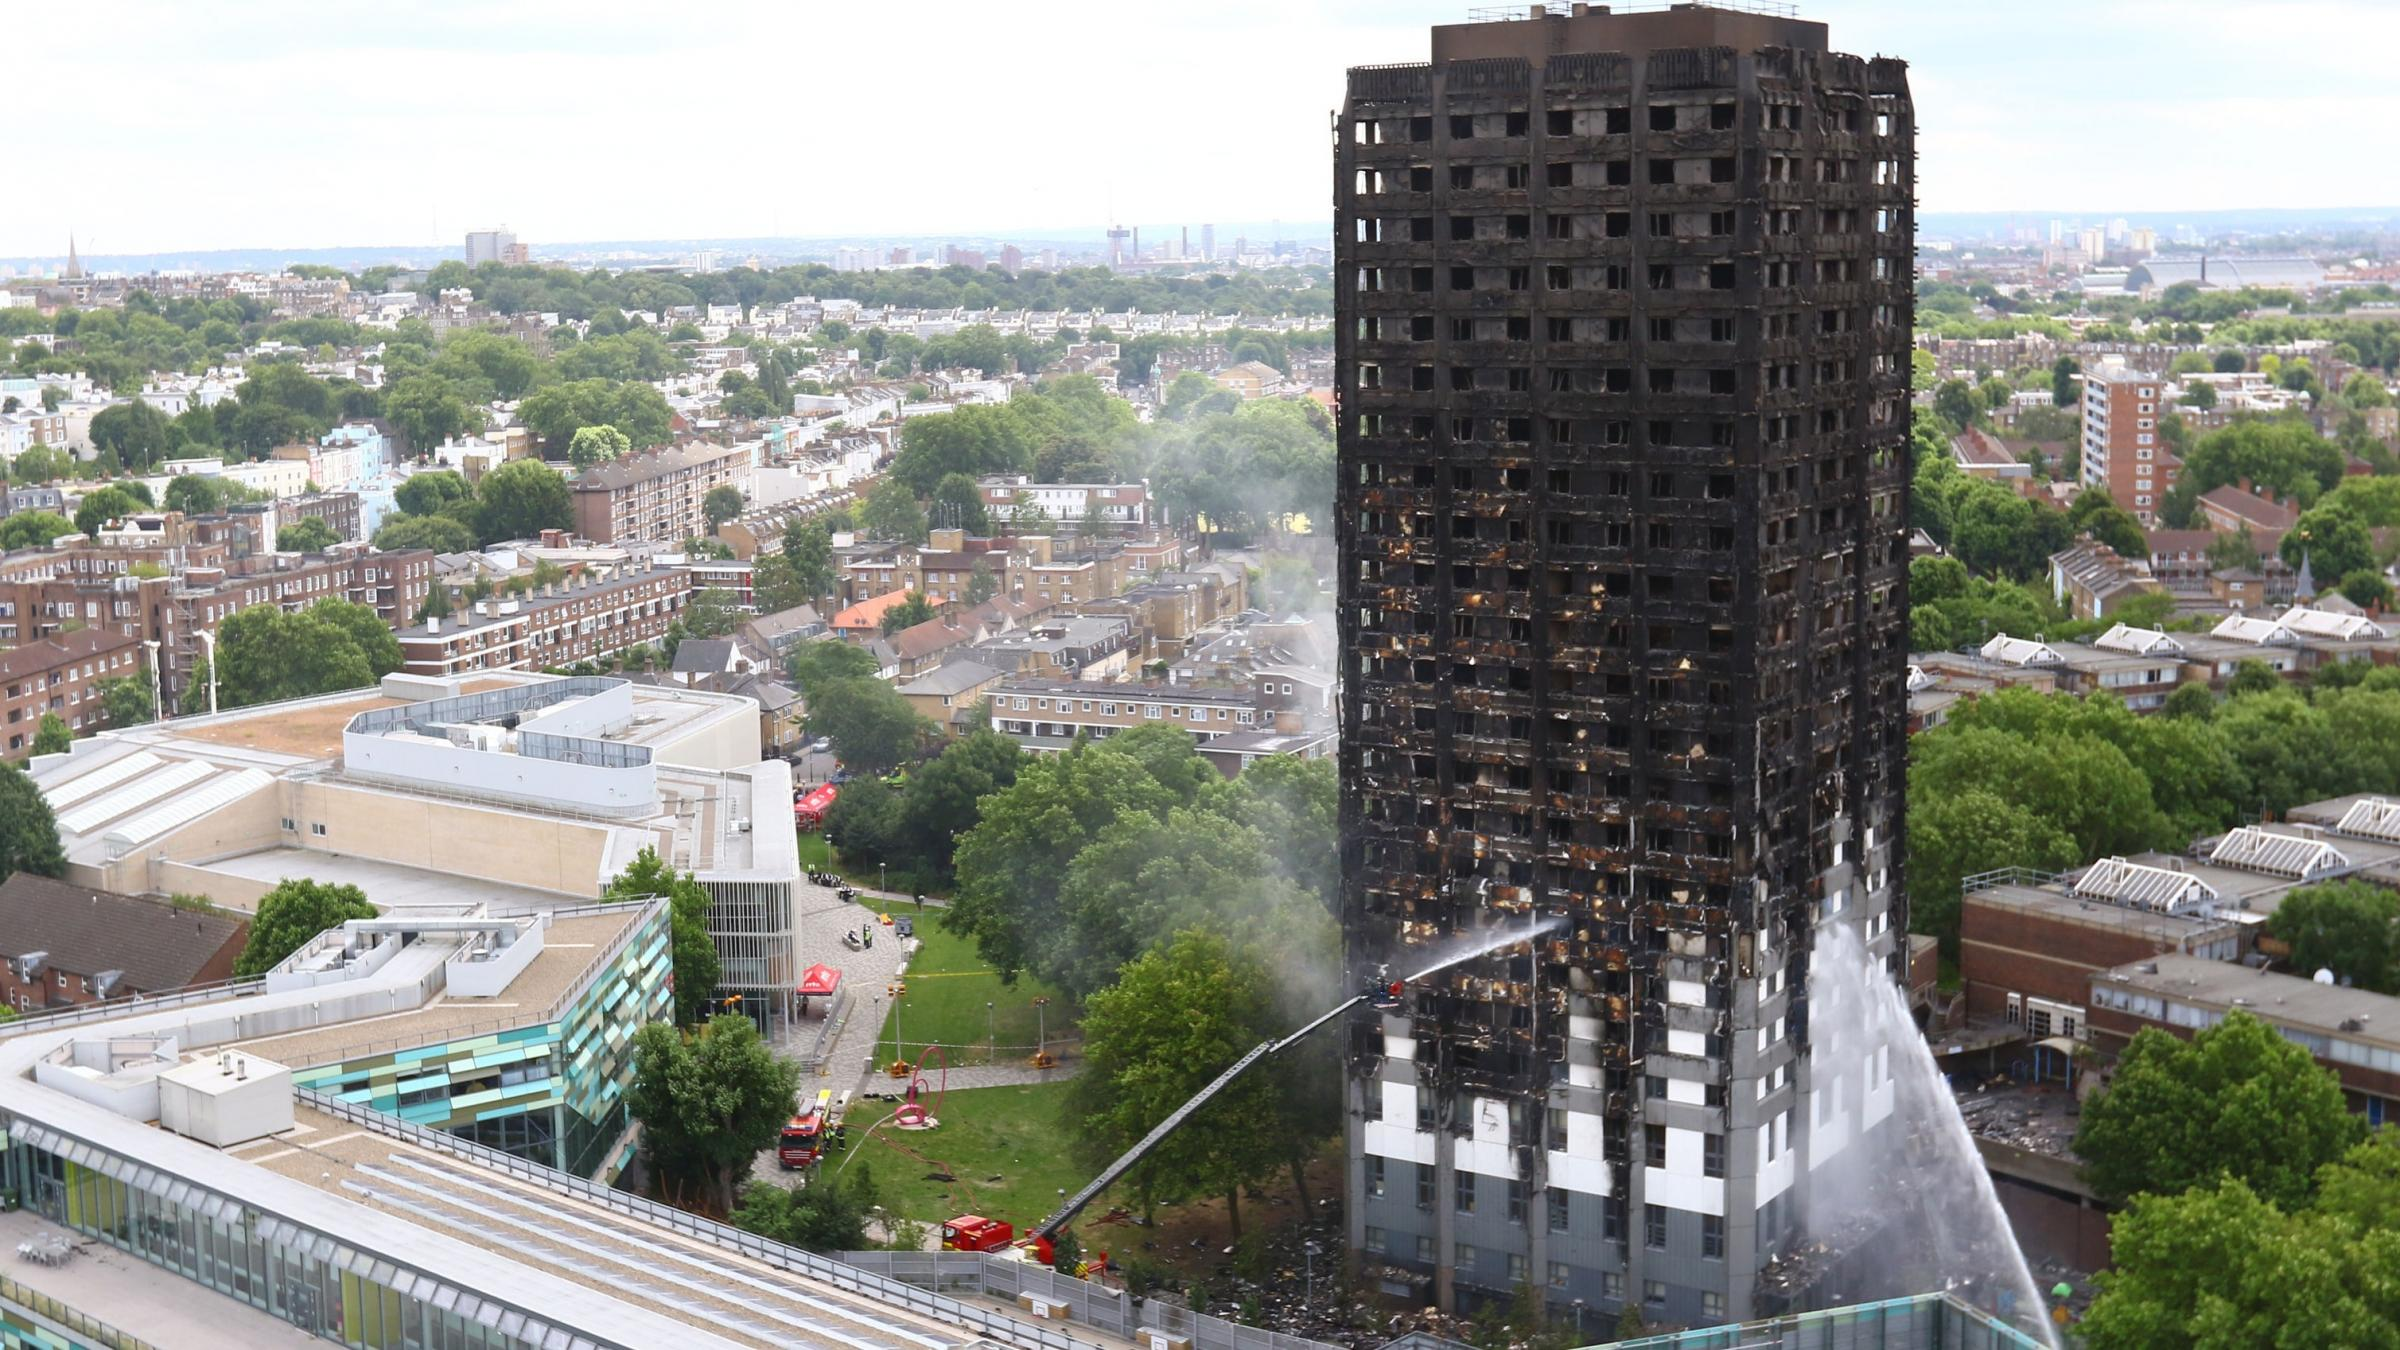 London fire: 58 missing people presumed dead after Grenfell Tower disaster